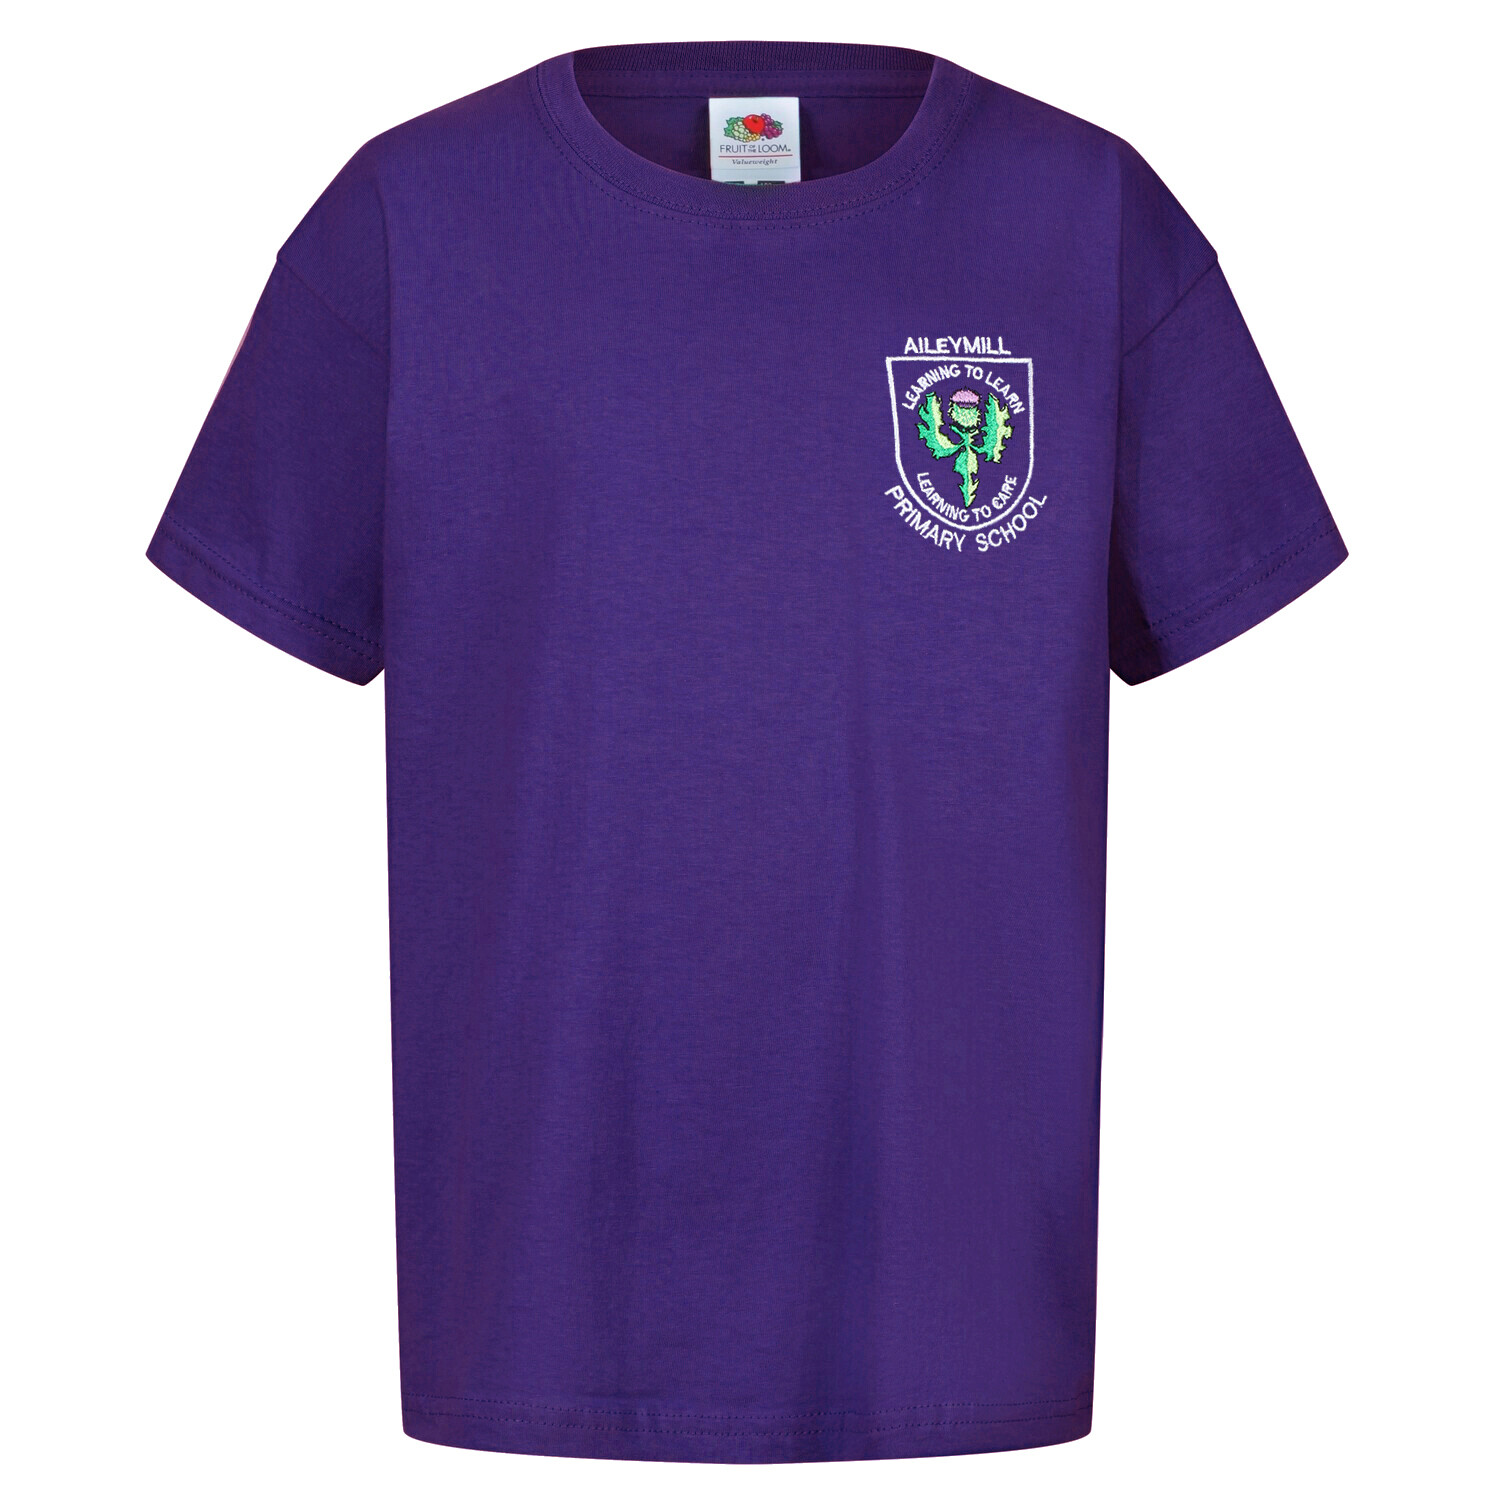 Aileymill Primary Staff T-Shirt (Unisex) (RCS5000)